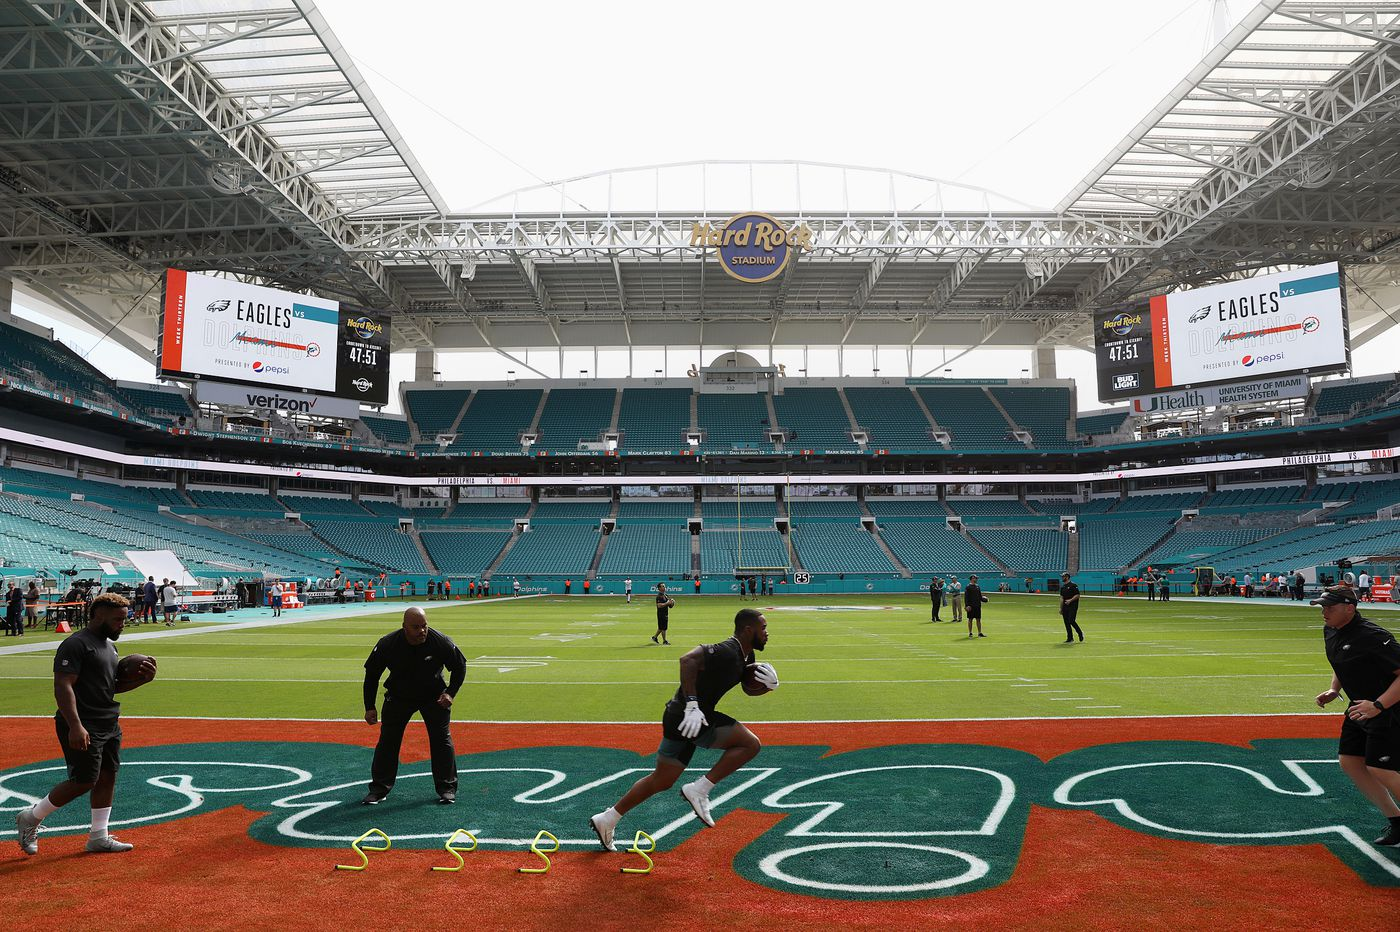 Eagles-Dolphins: Start time, how to watch and stream